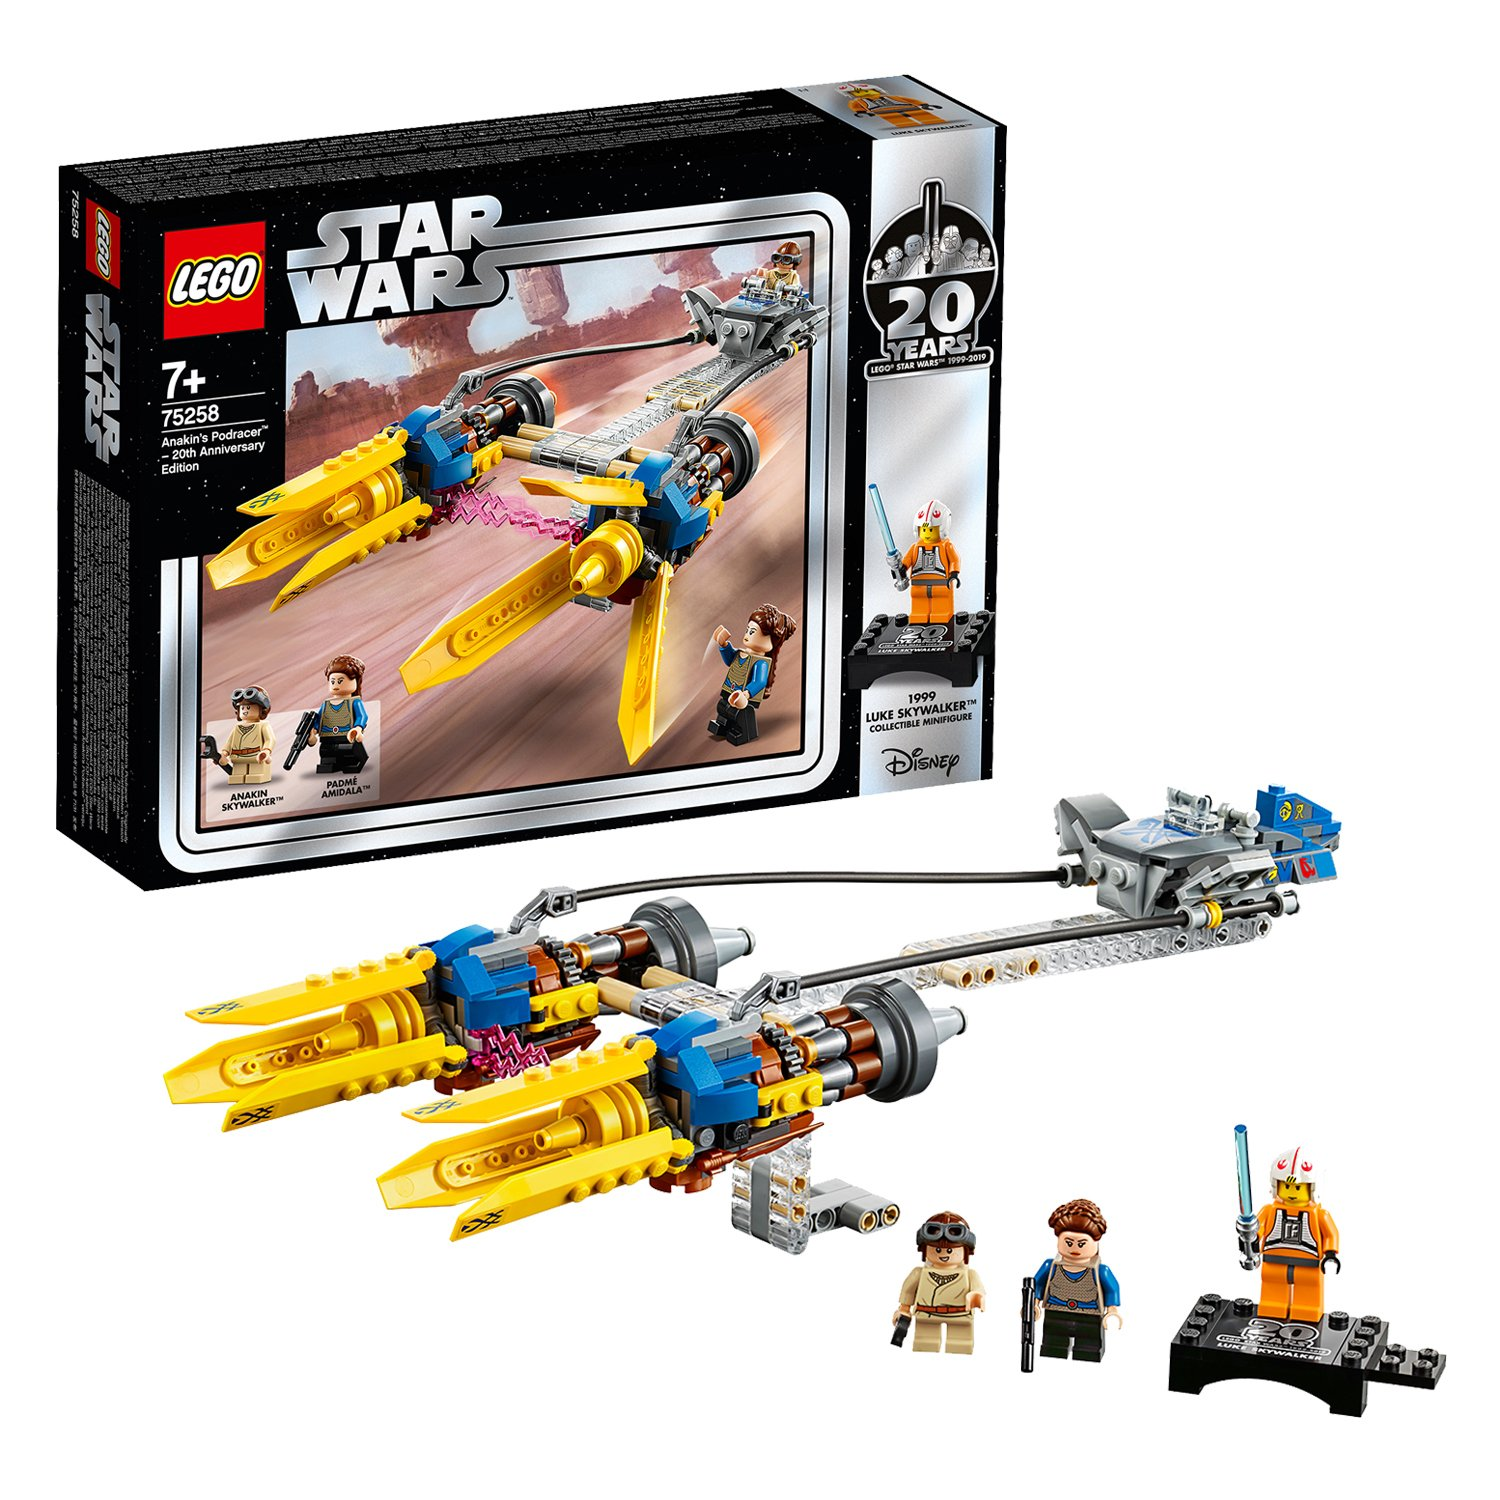 LEGO Star Wars Anakin Podracer 20th Anniversary Set - 75258